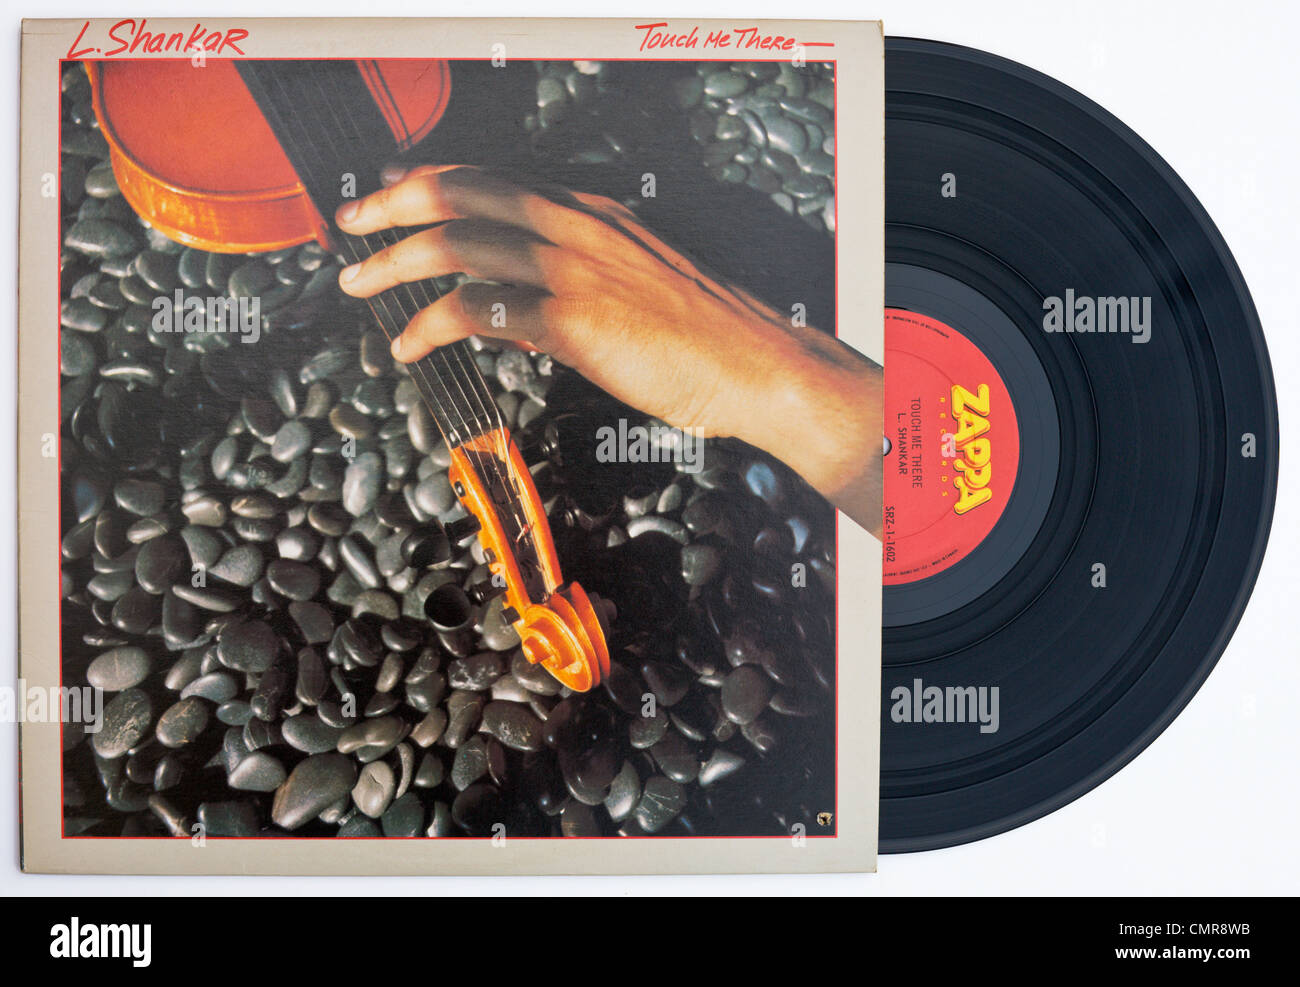 L  SHANKAR Touch Me There vinyl album cover released 1979 on ZAPPA